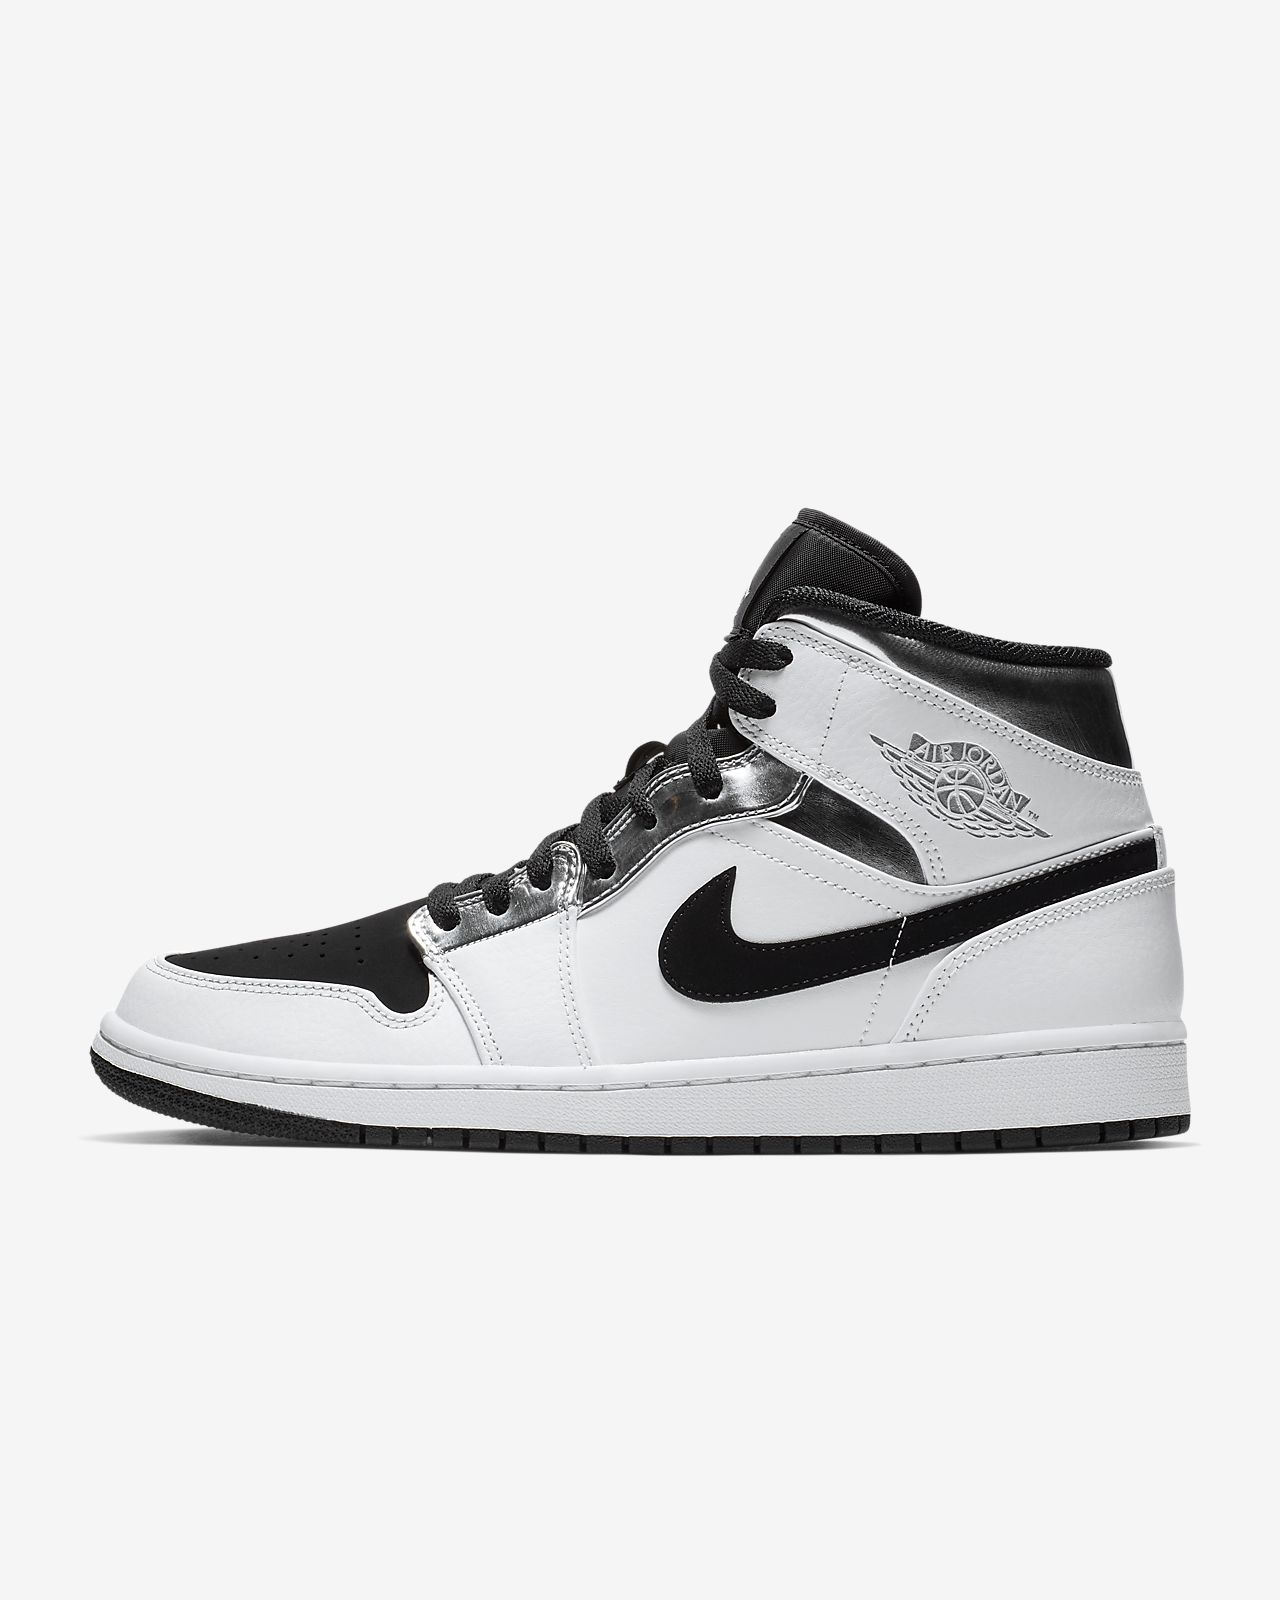 d7b0fabbfff7 Air Jordan 1 Mid Men s Shoe. Nike.com